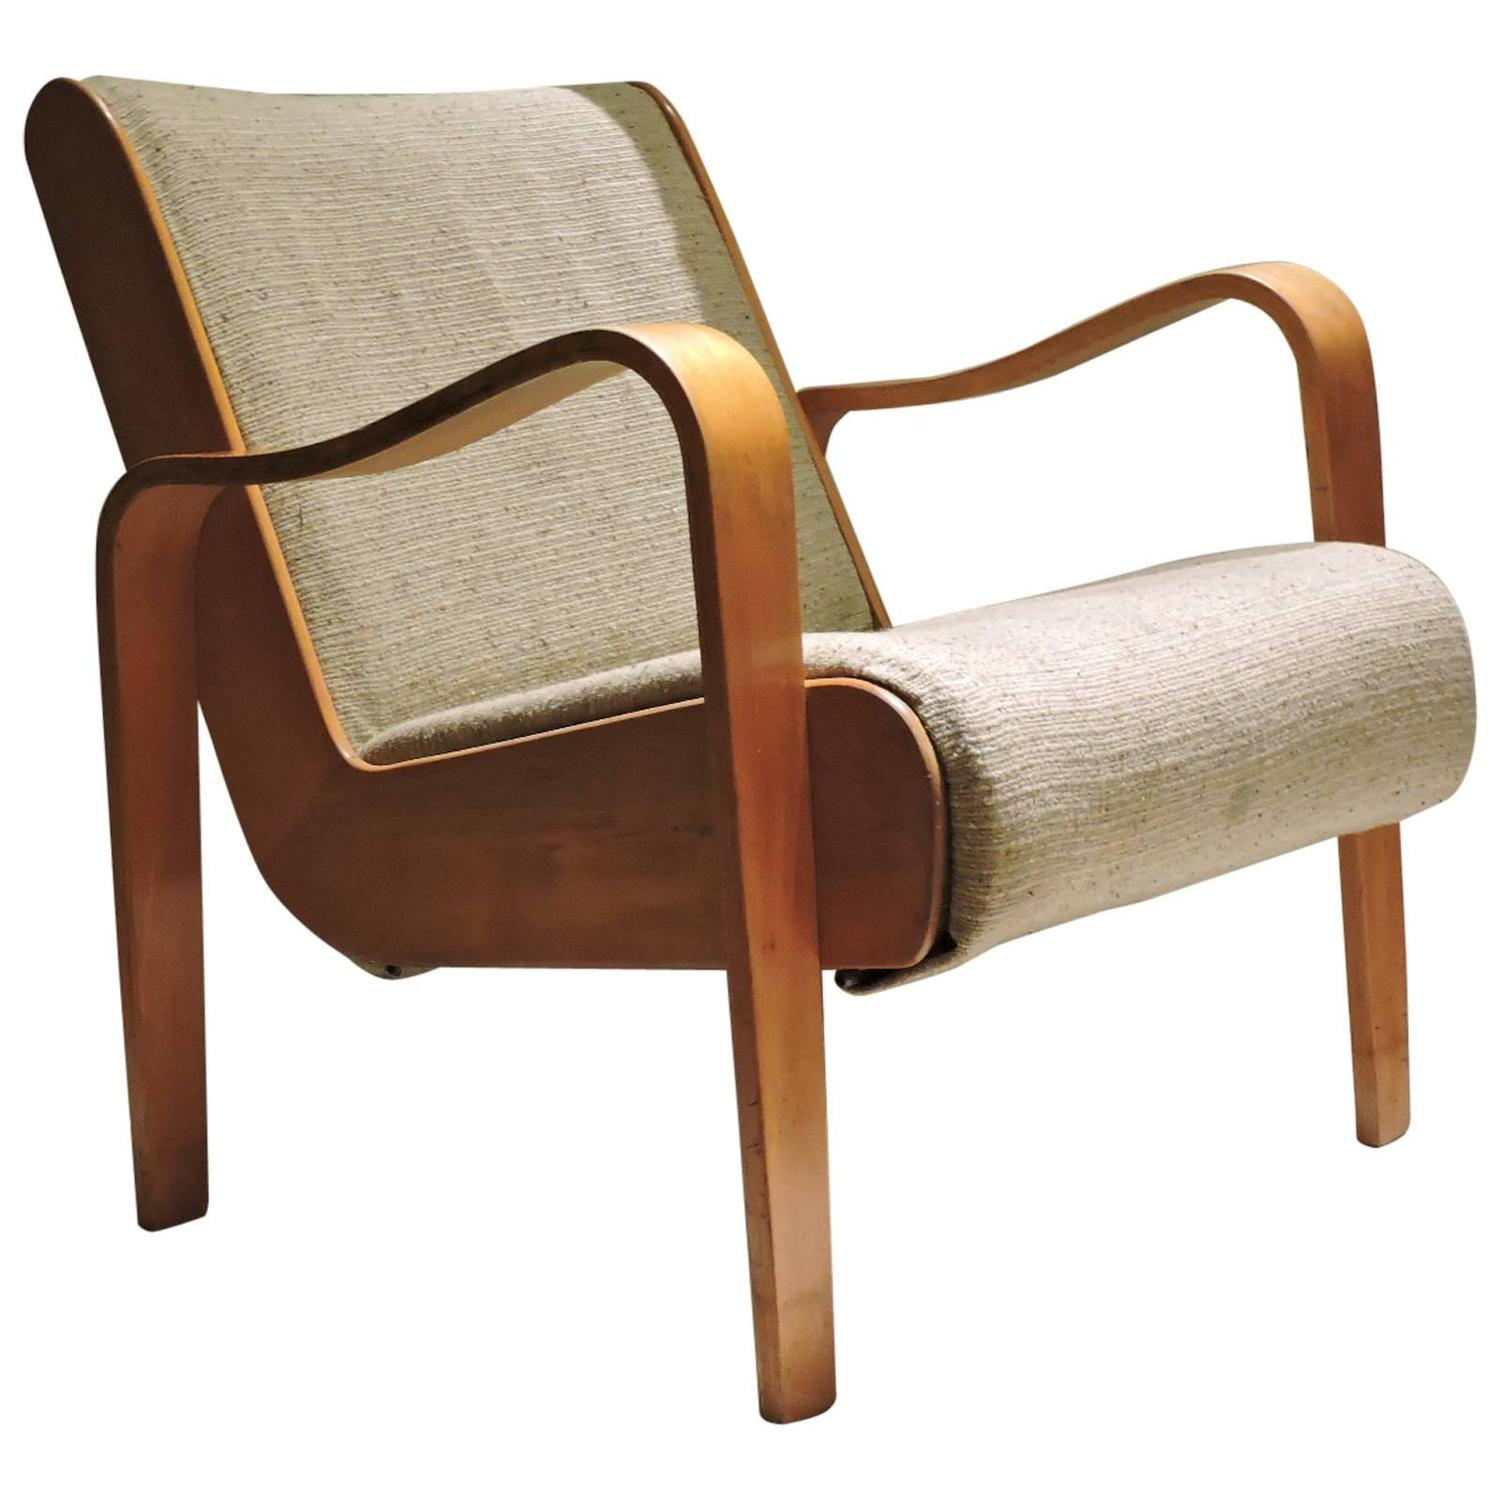 thonet chair styles cloth covers for weddings unusual bentwood lounge at 1stdibs